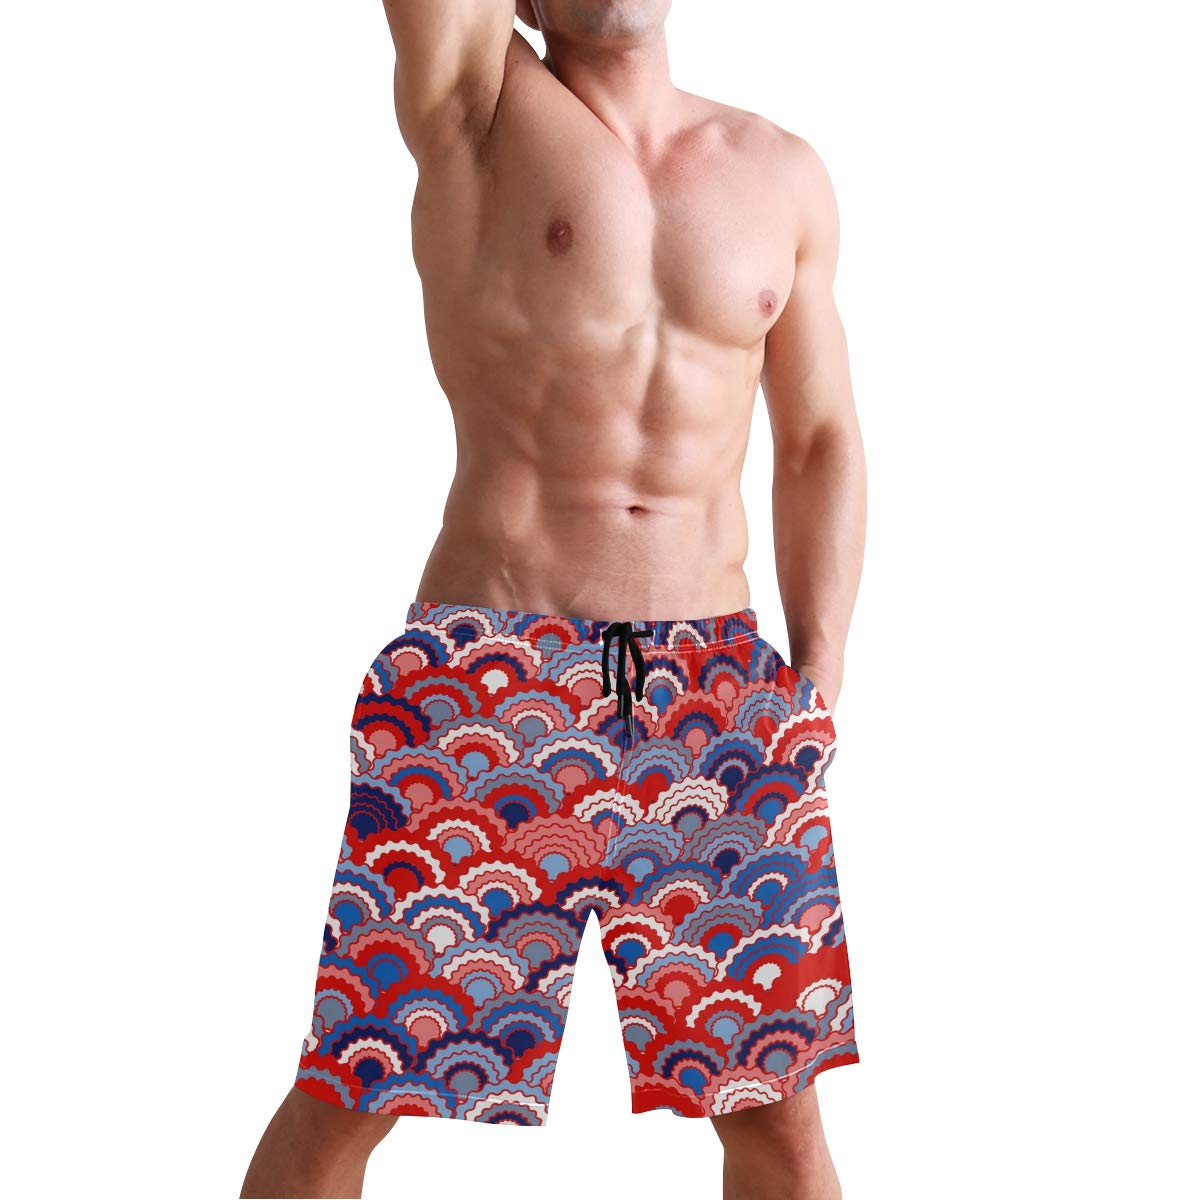 CENHOME Mens Swim Trunks Red Blue Navy White Fish Scale Pattern Beach Board Shorts